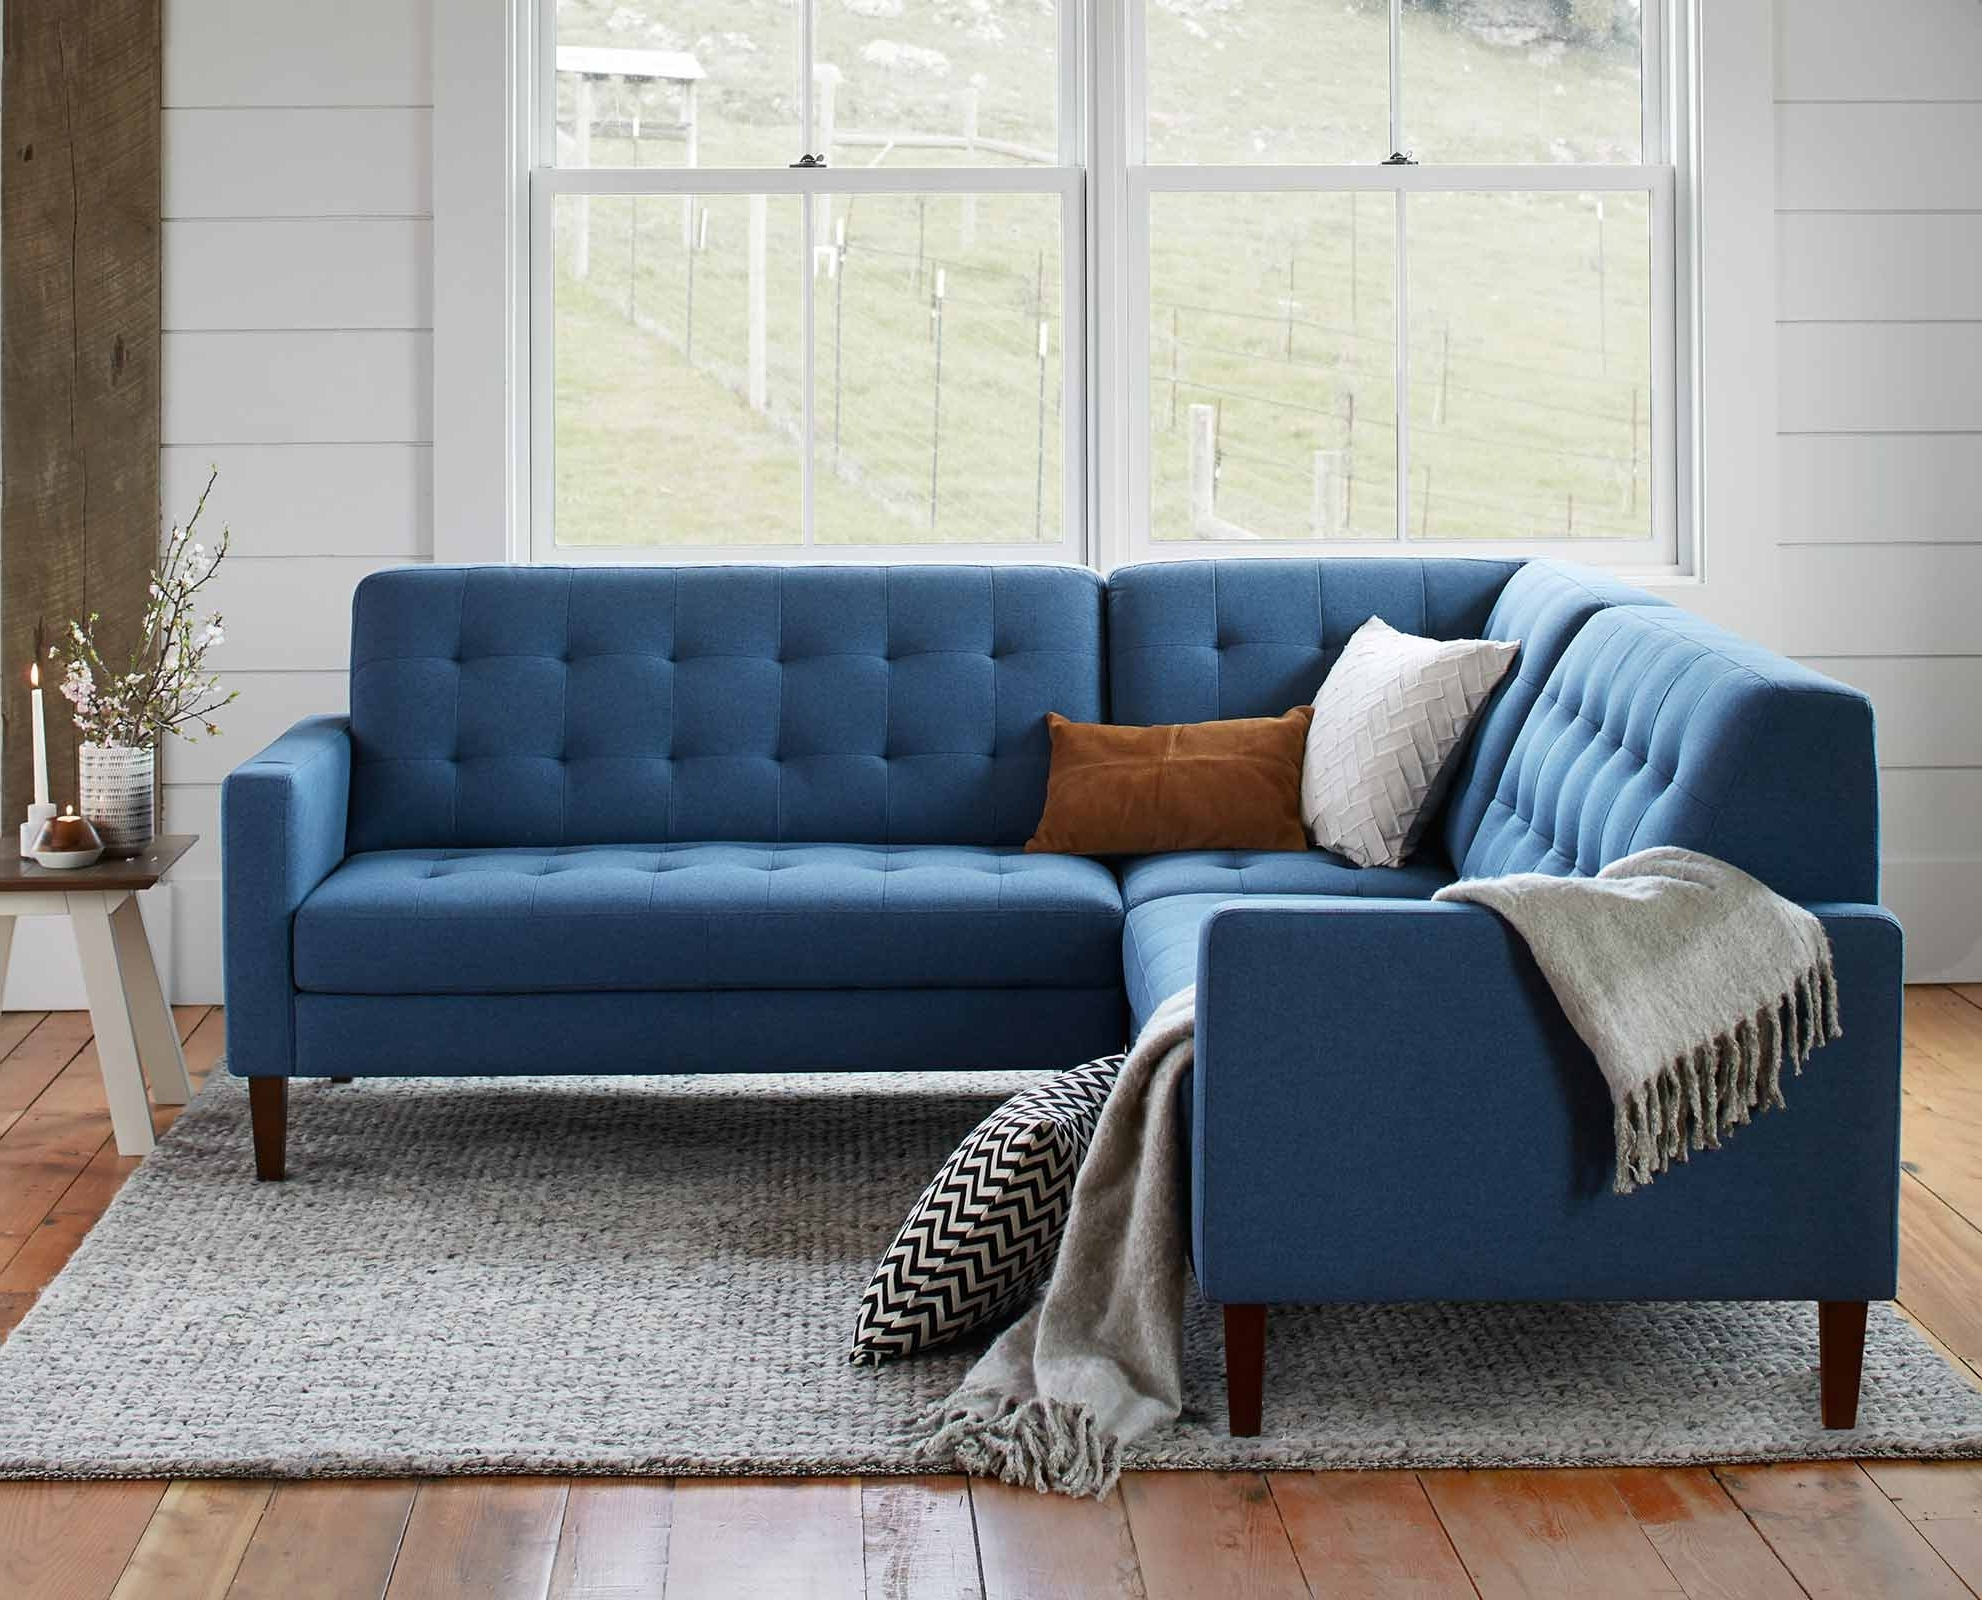 The Camilla Sectional From Scandinavian Designs – Adopt A Adopt A With Well Known Dania Sectional Sofas (View 2 of 15)